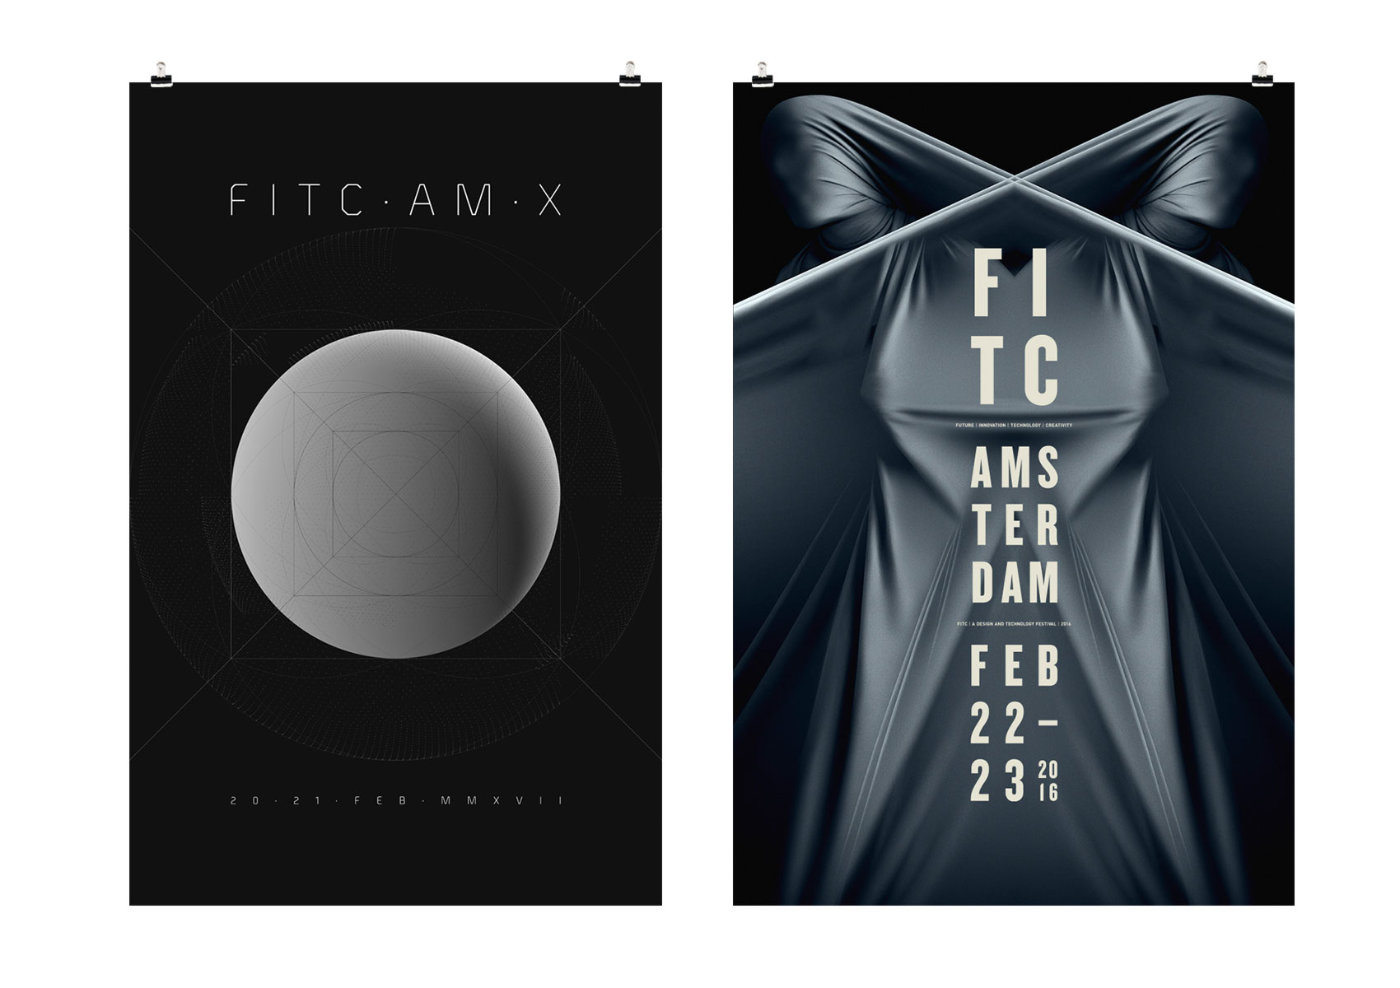 FITC_posters_2017-2016.jpg